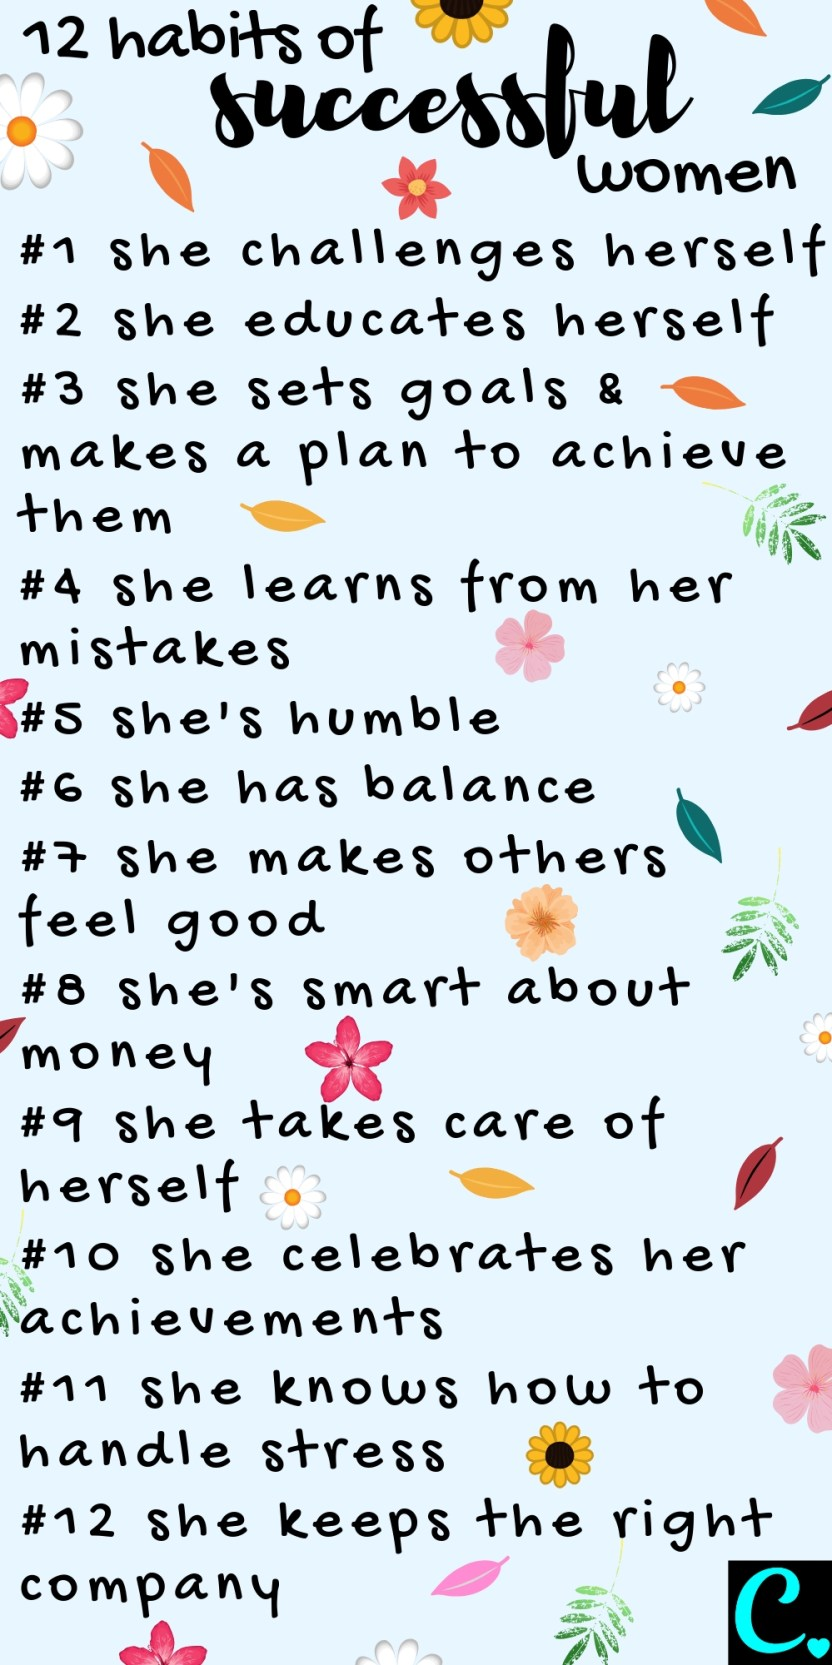 12 Habits of Successful Women Infographic #habits #habitsofsuccessfulpeople #success #successful #successfulwomen #successmindset